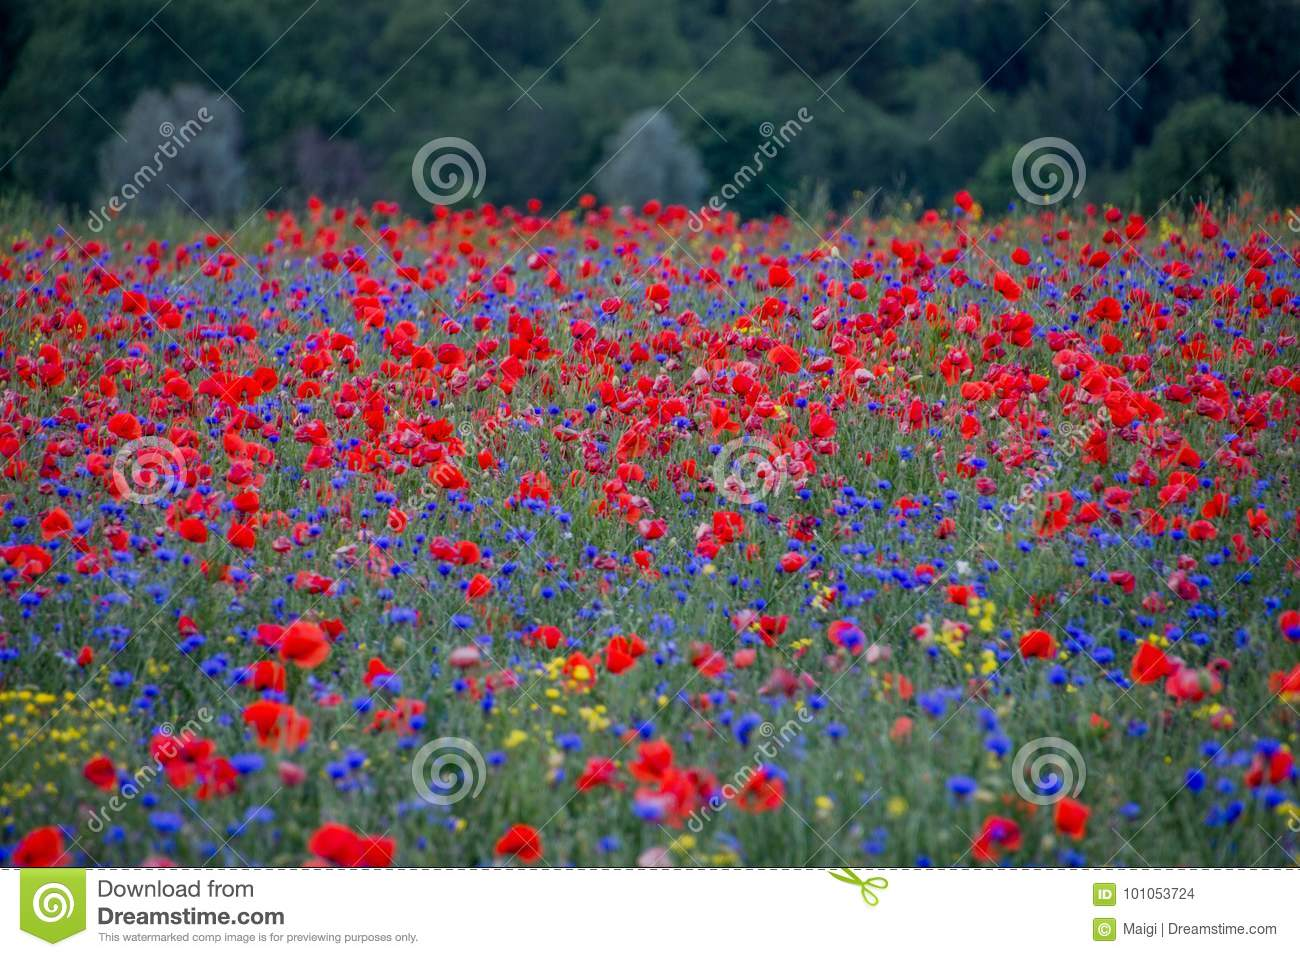 Poppy field in full bloom